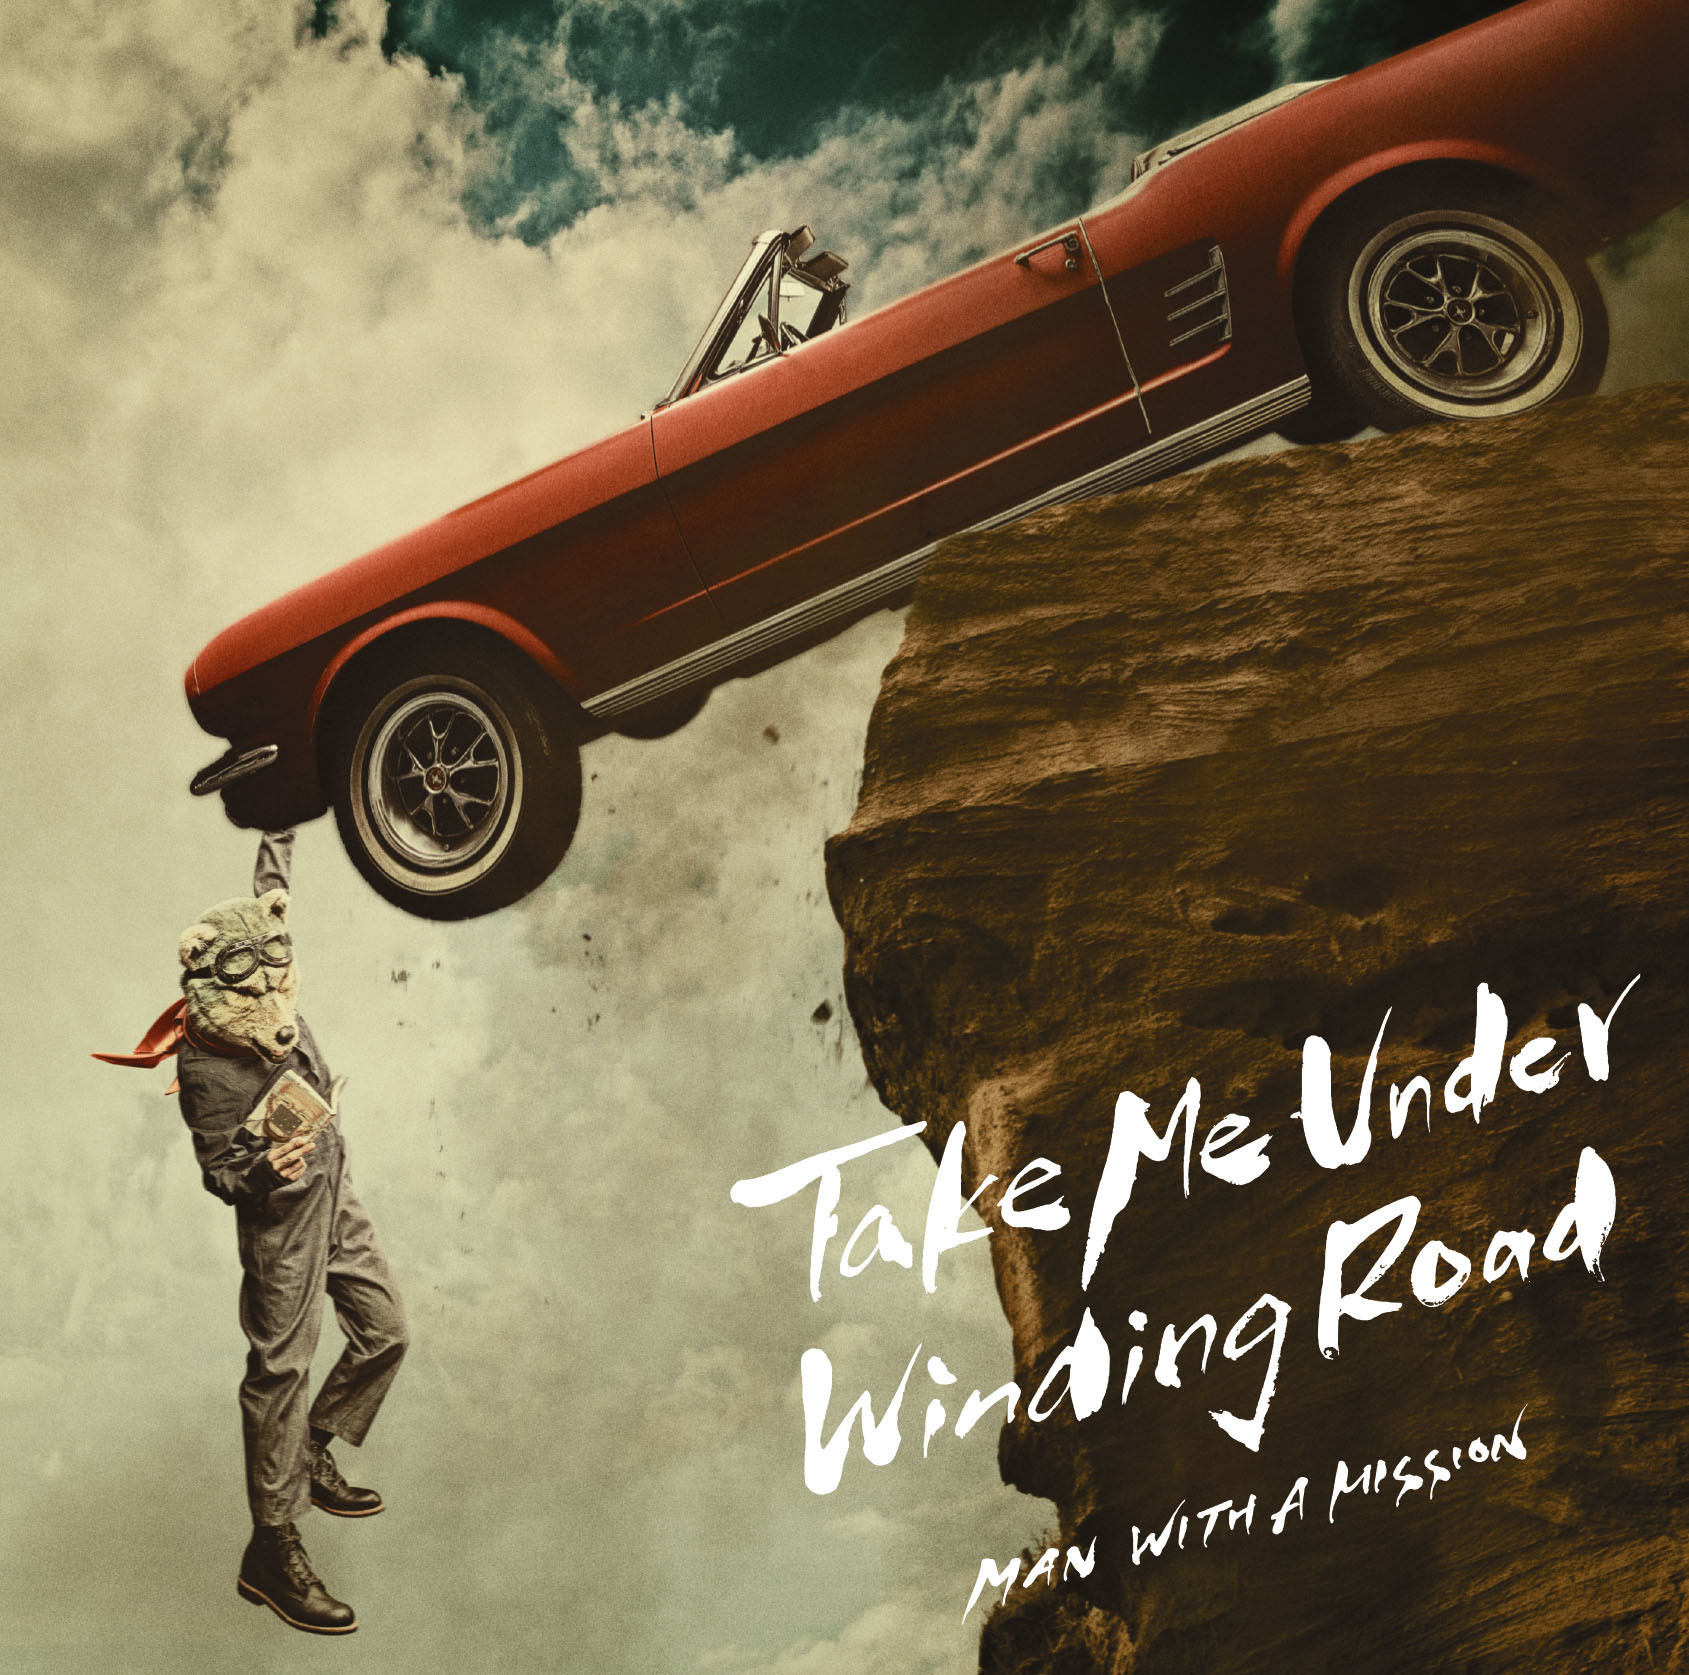 Content_take_me_under__winding_road_%e5%88%9d%e5%9b%9e%e7%9b%a4